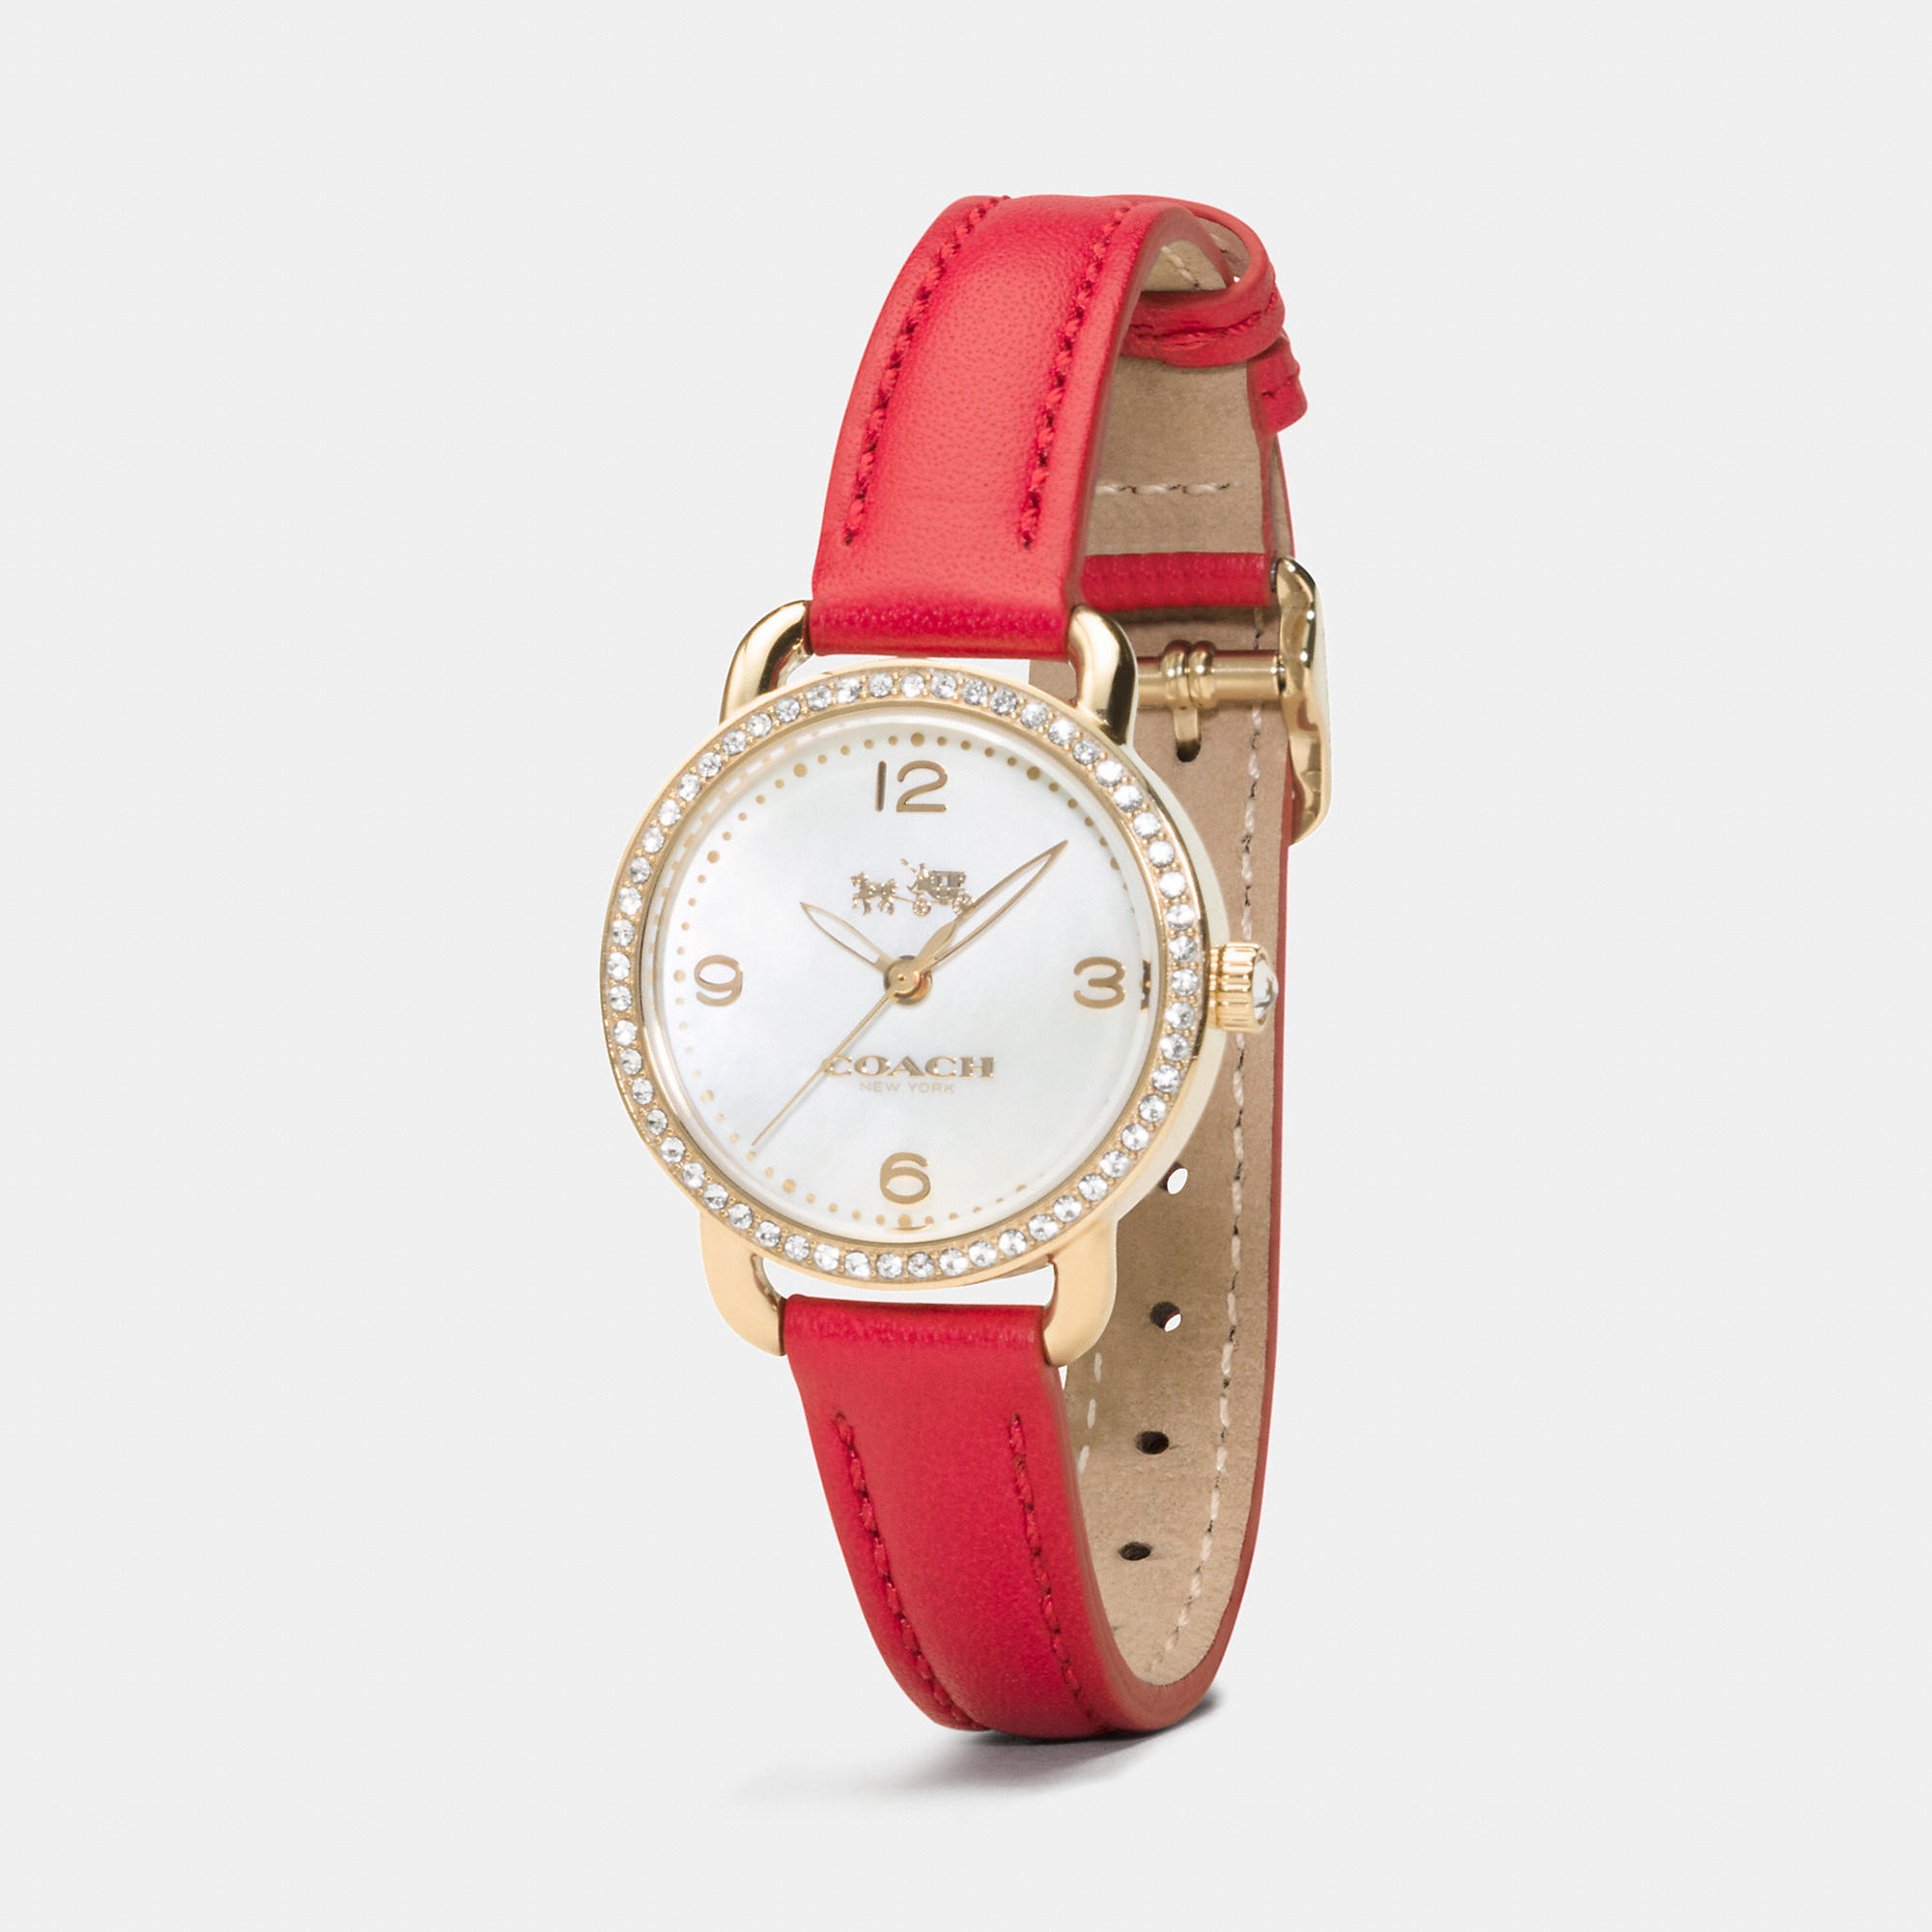 with braun strap leather right red chronograph watch side watches prestige gents